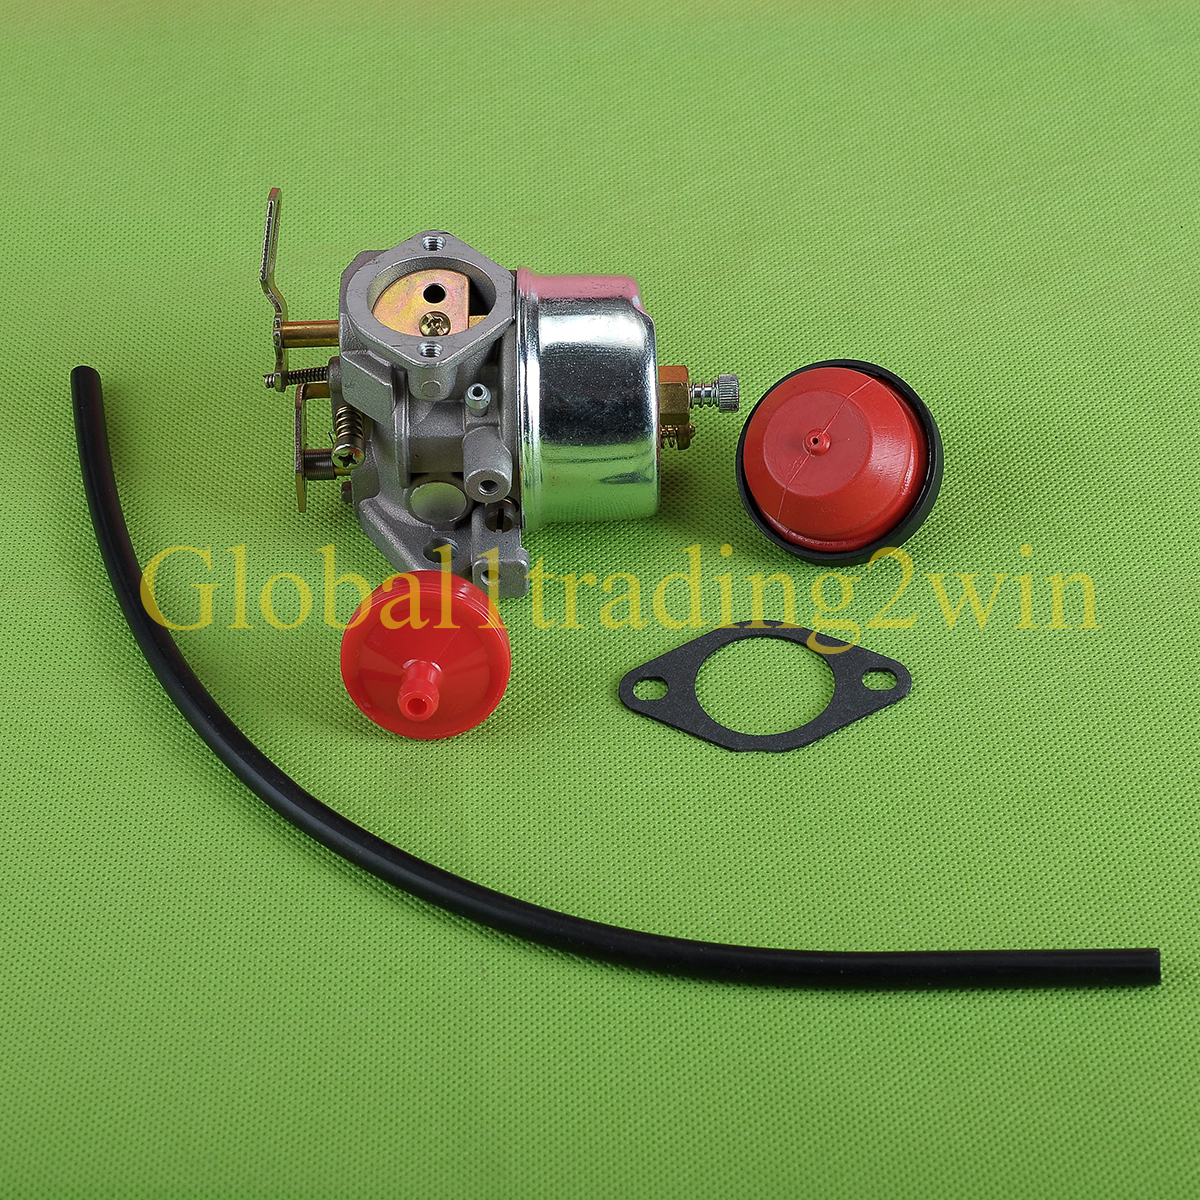 carburetor primer bulb pump fuel filter for tecumseh hm100 ... fuel filter for tecumseh hm100 fuel filter for craftsman chainsaws